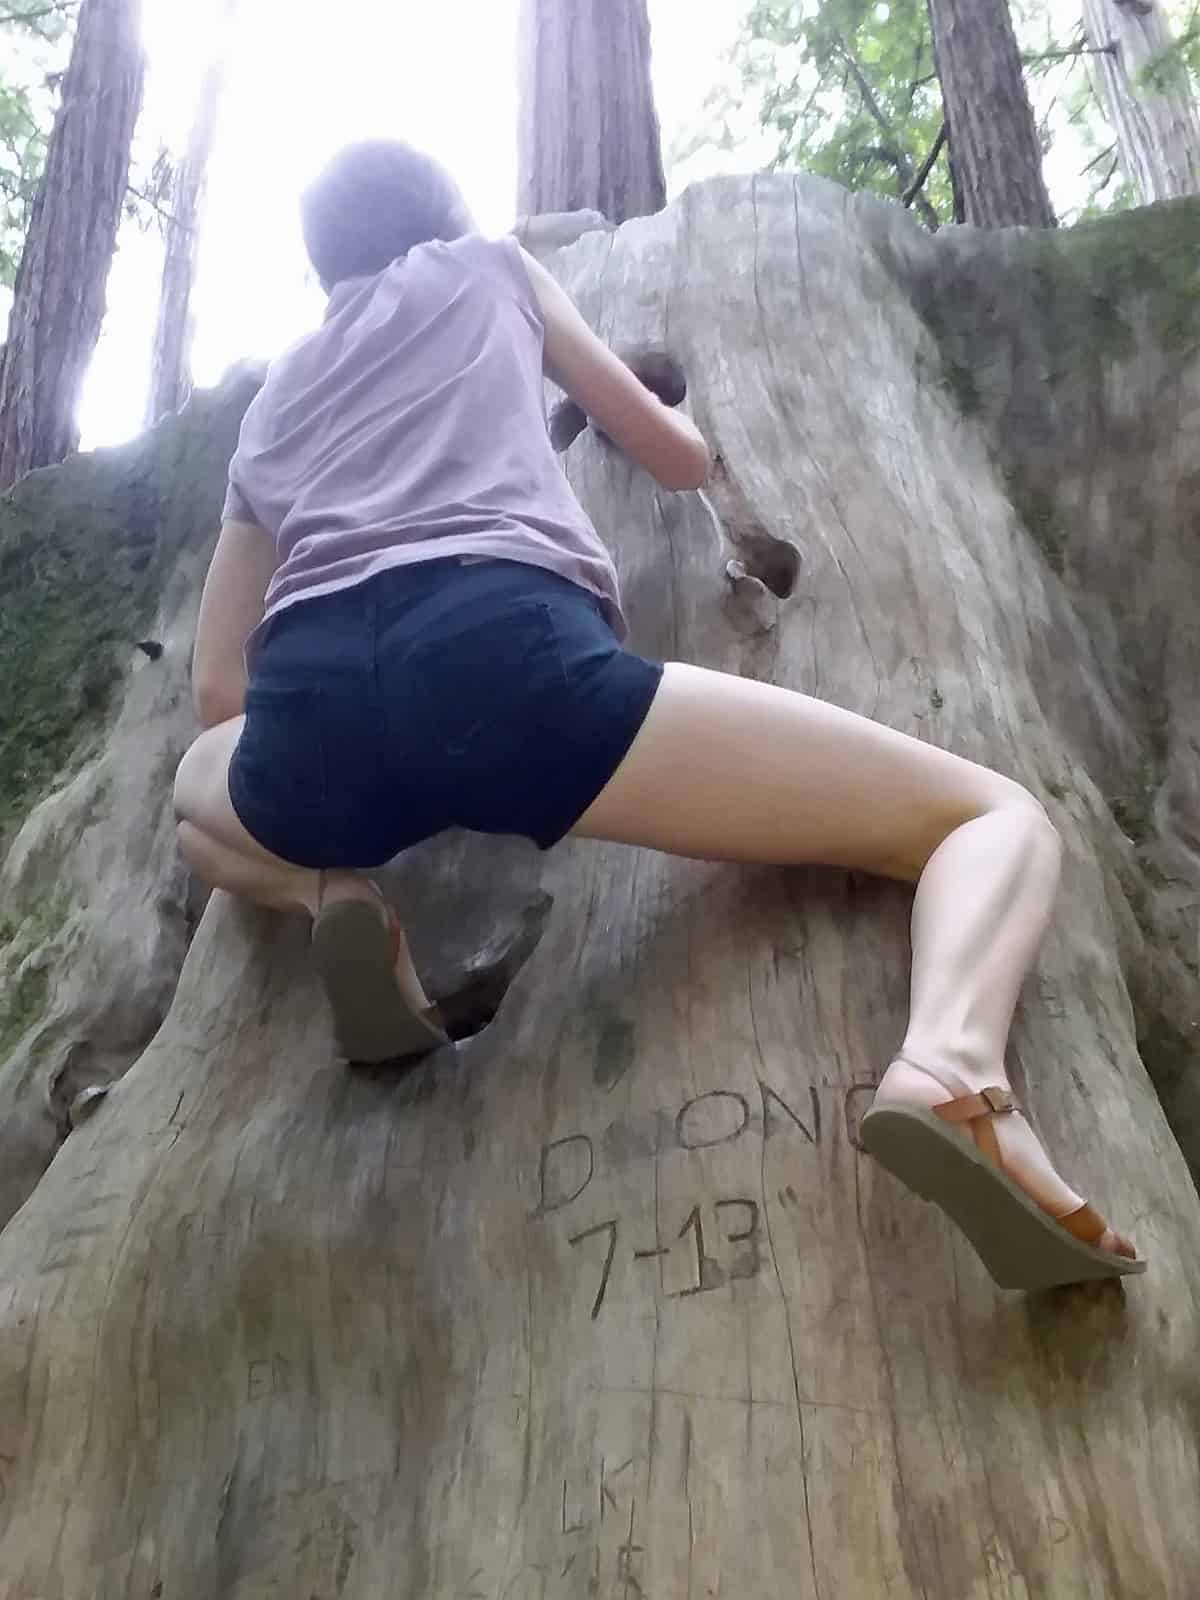 Redwood Stump With Climbing Holds